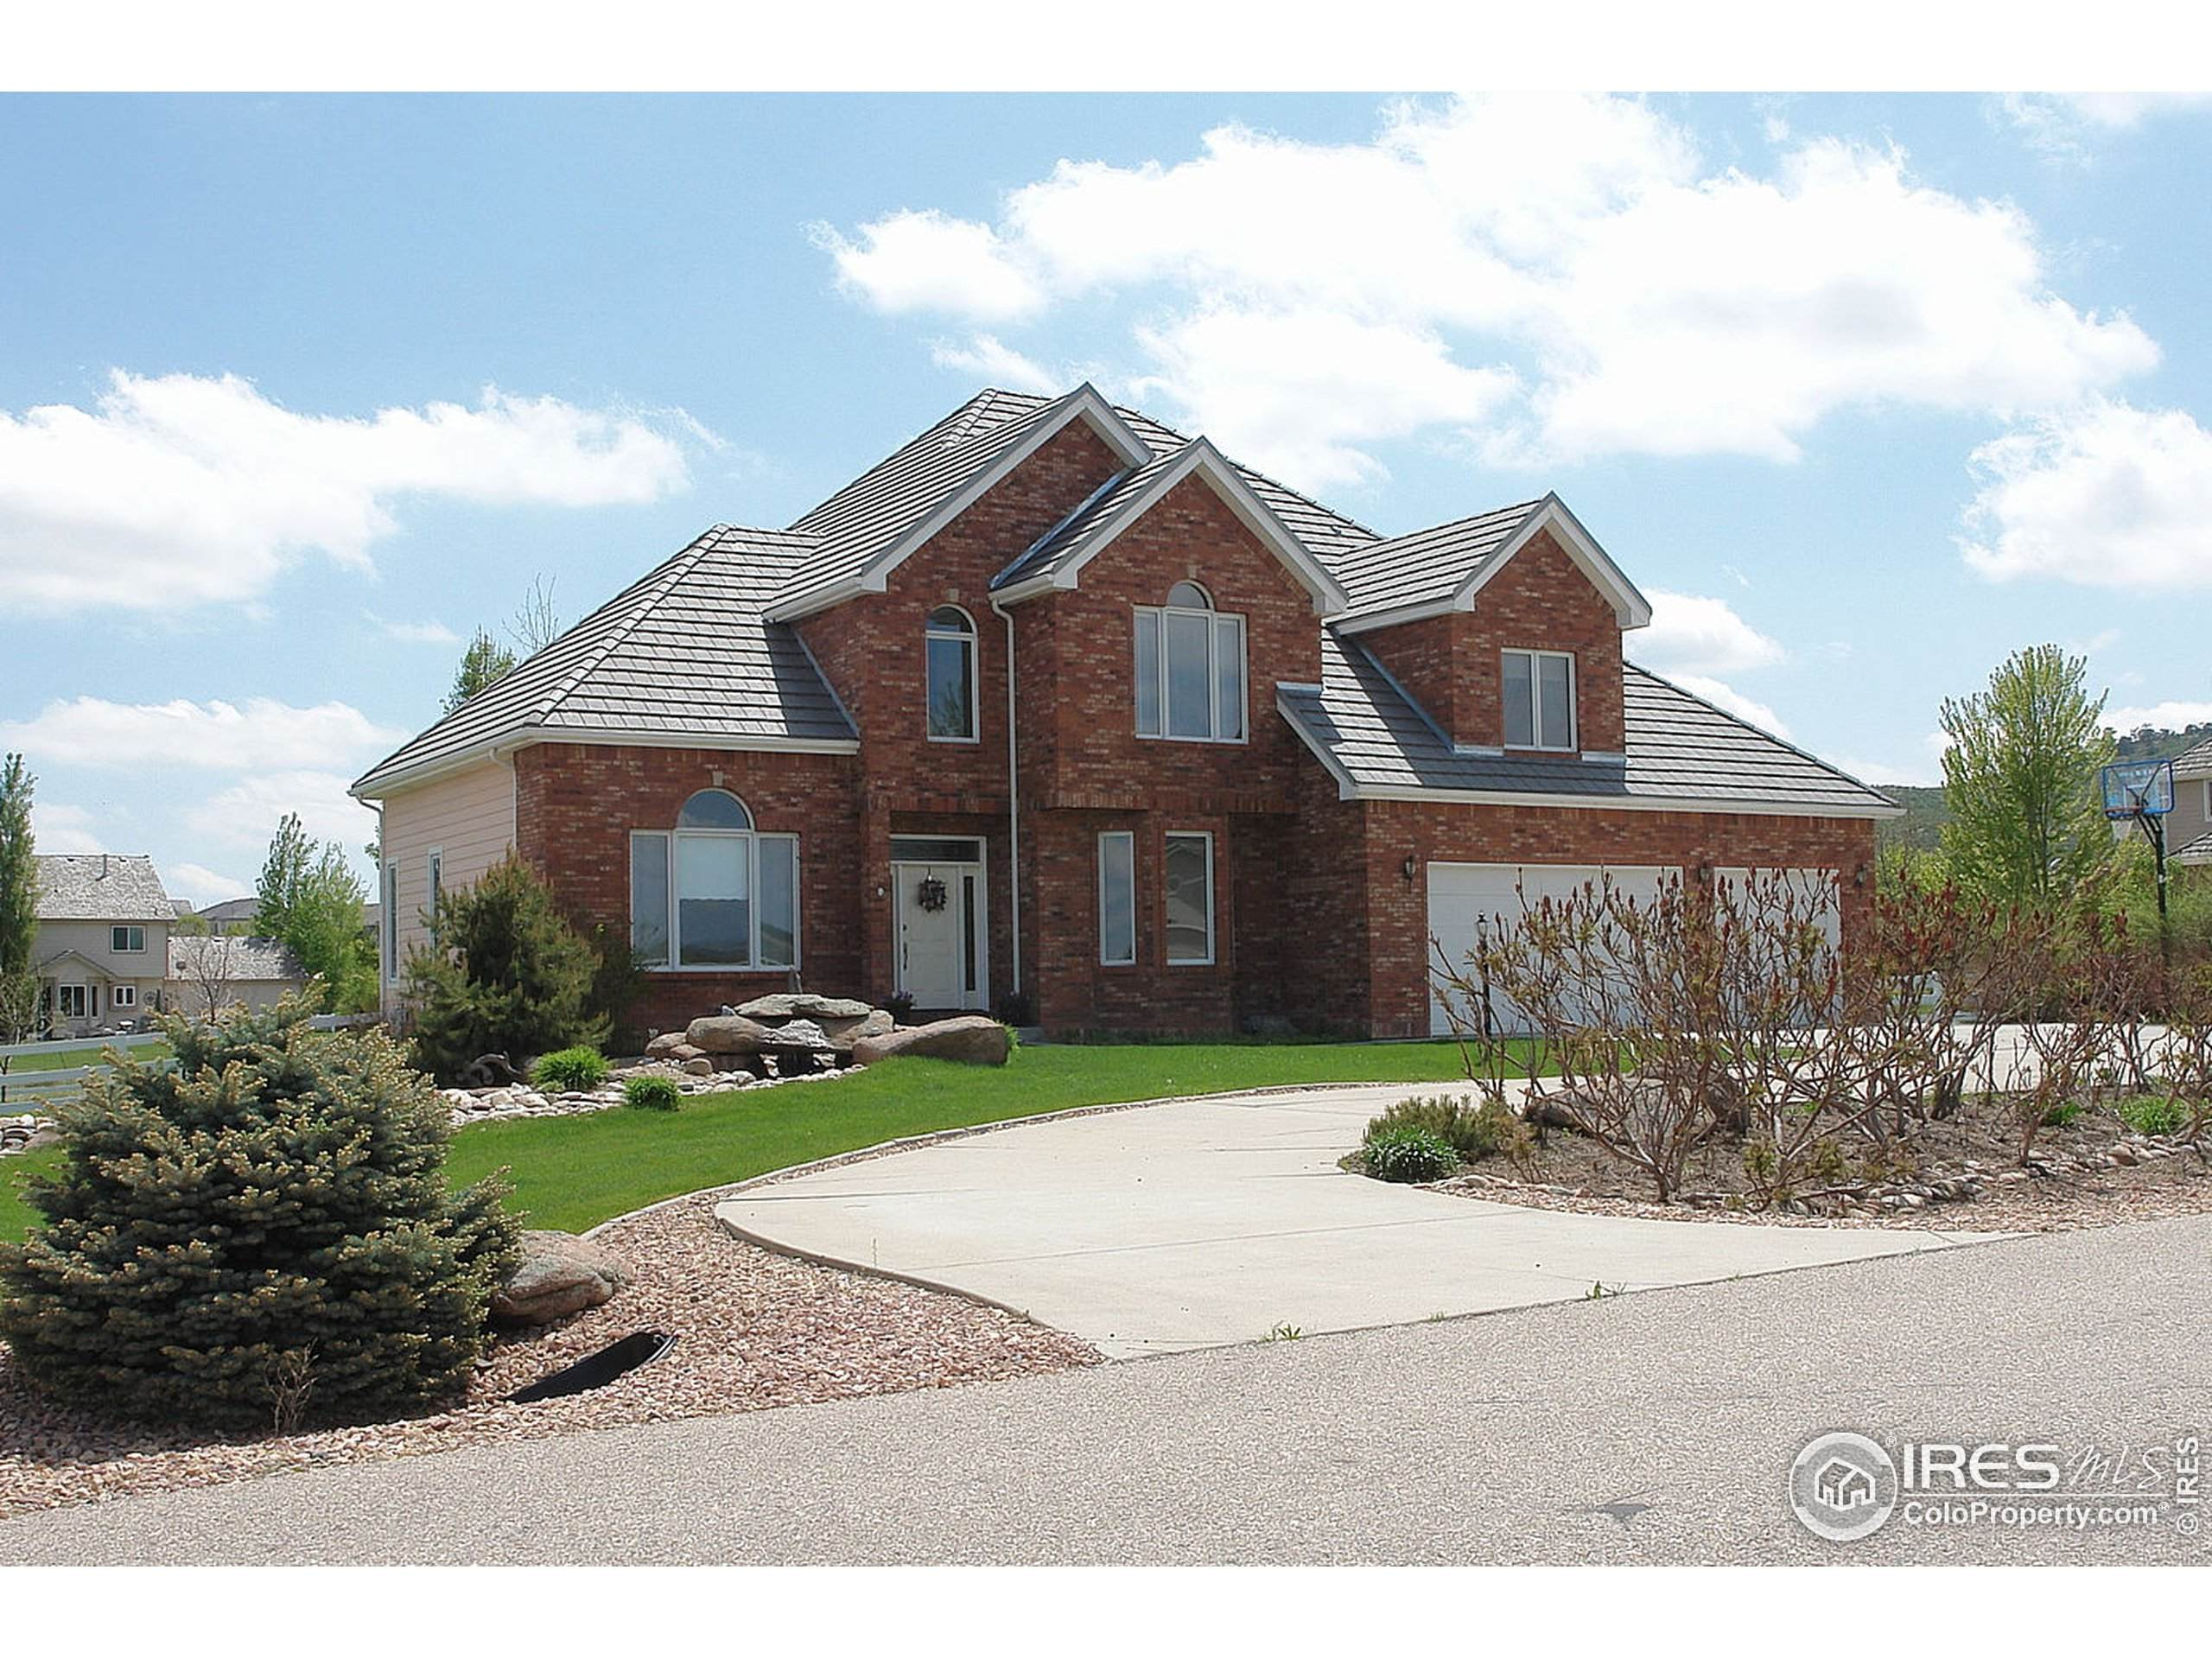 40 Pinecliff Trl, Nederland, CO 80466 (#929708) :: Realty ONE Group Five Star